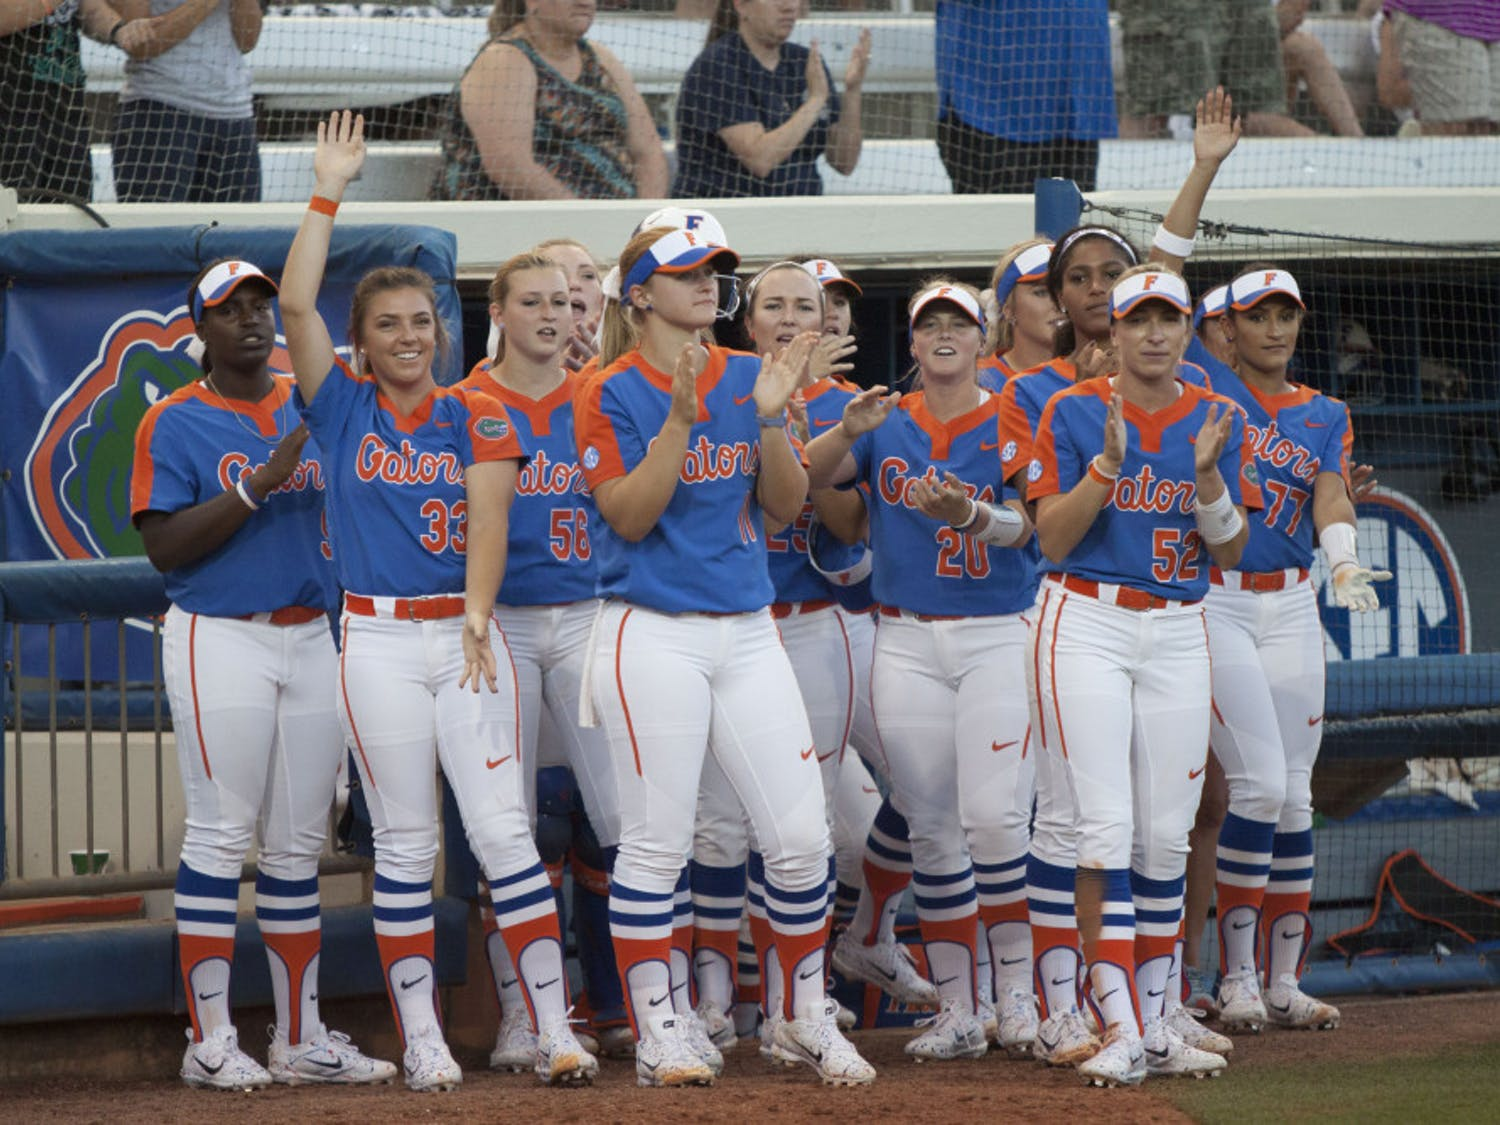 Florida defeated LSU 7-0 in its first game of a three-game series. Junior Alex Voss led the Gators offensively with two RBIs.